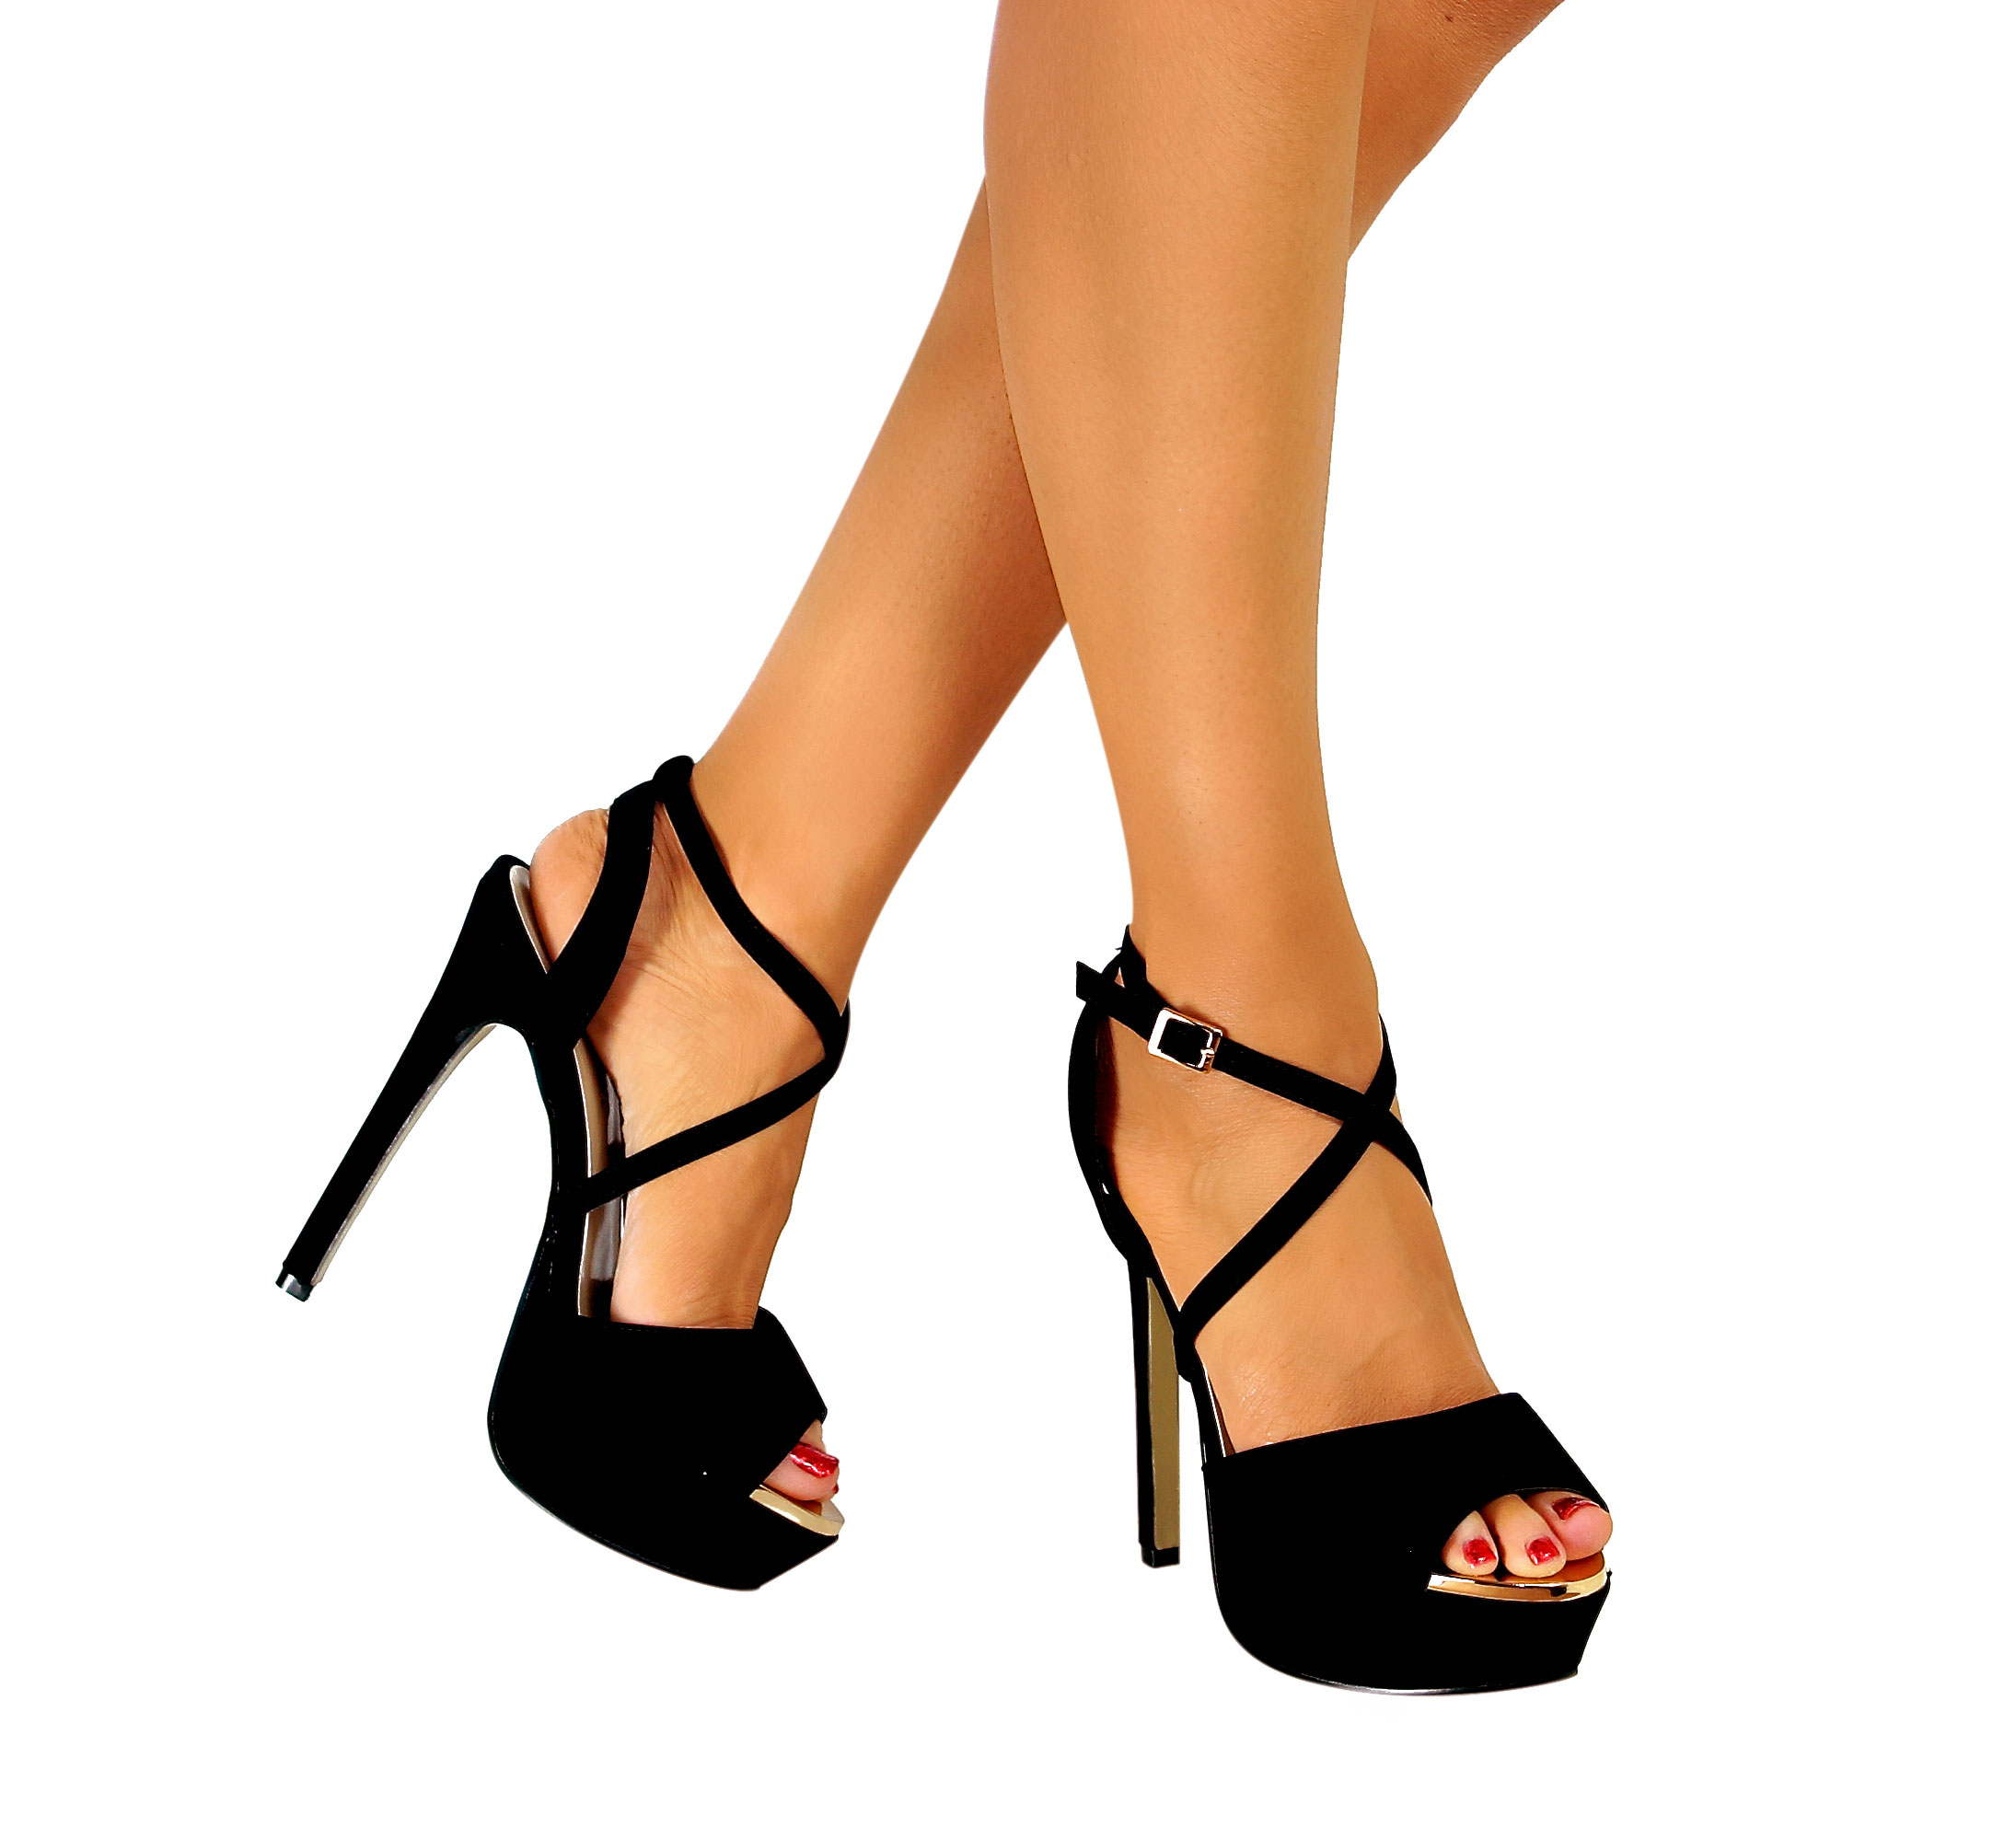 Women's designer sandals on sale now. Shop ladies strappy & leather sandals, dressy summer shoes & footwear perfect for the beach or holiday evenings from big brands online for less at THE OUTNET.